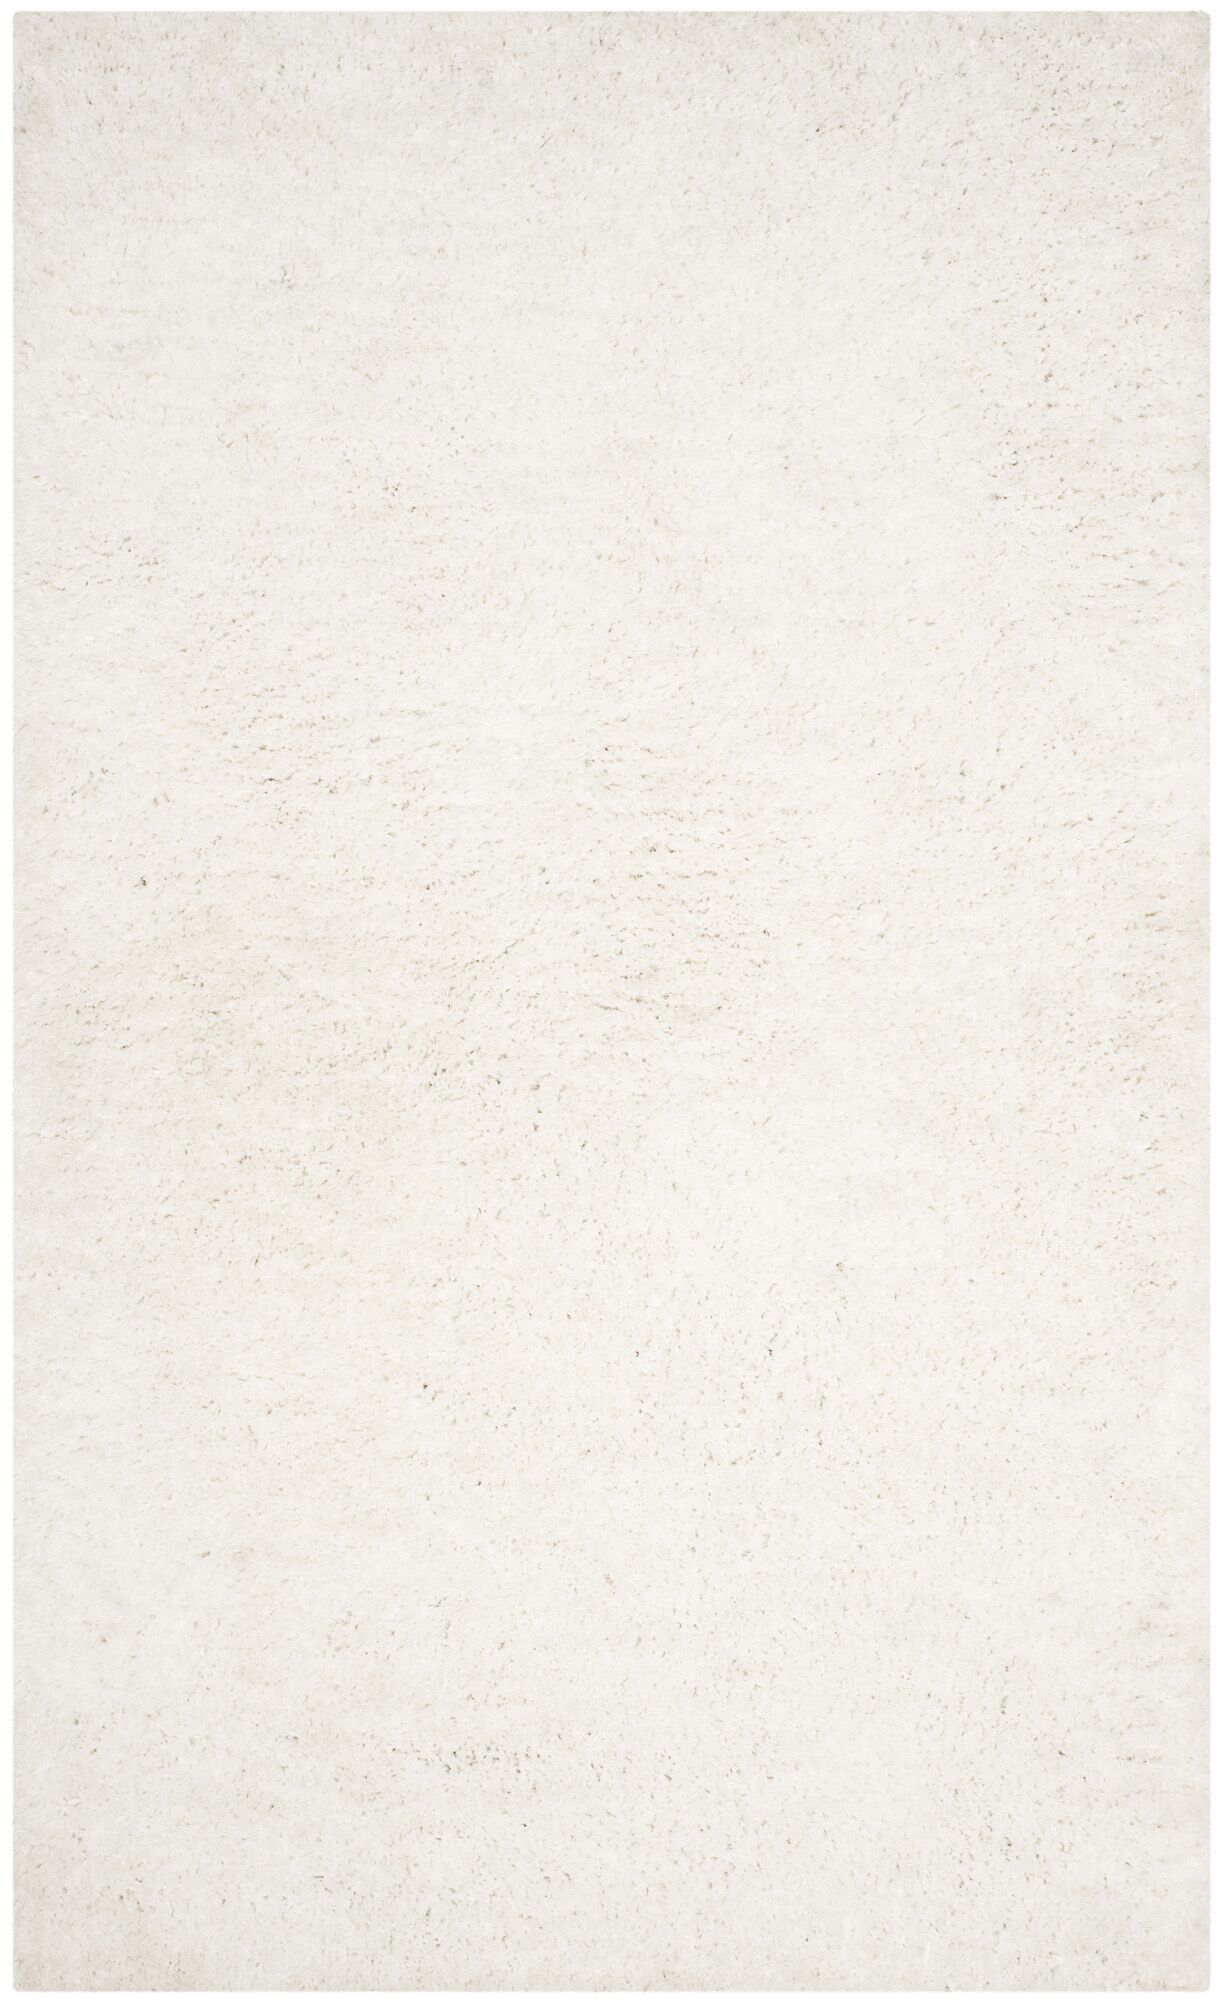 Bilgarrie Hand-Tufted White Area Rug Rug Size: Rectangle 5' x 8'